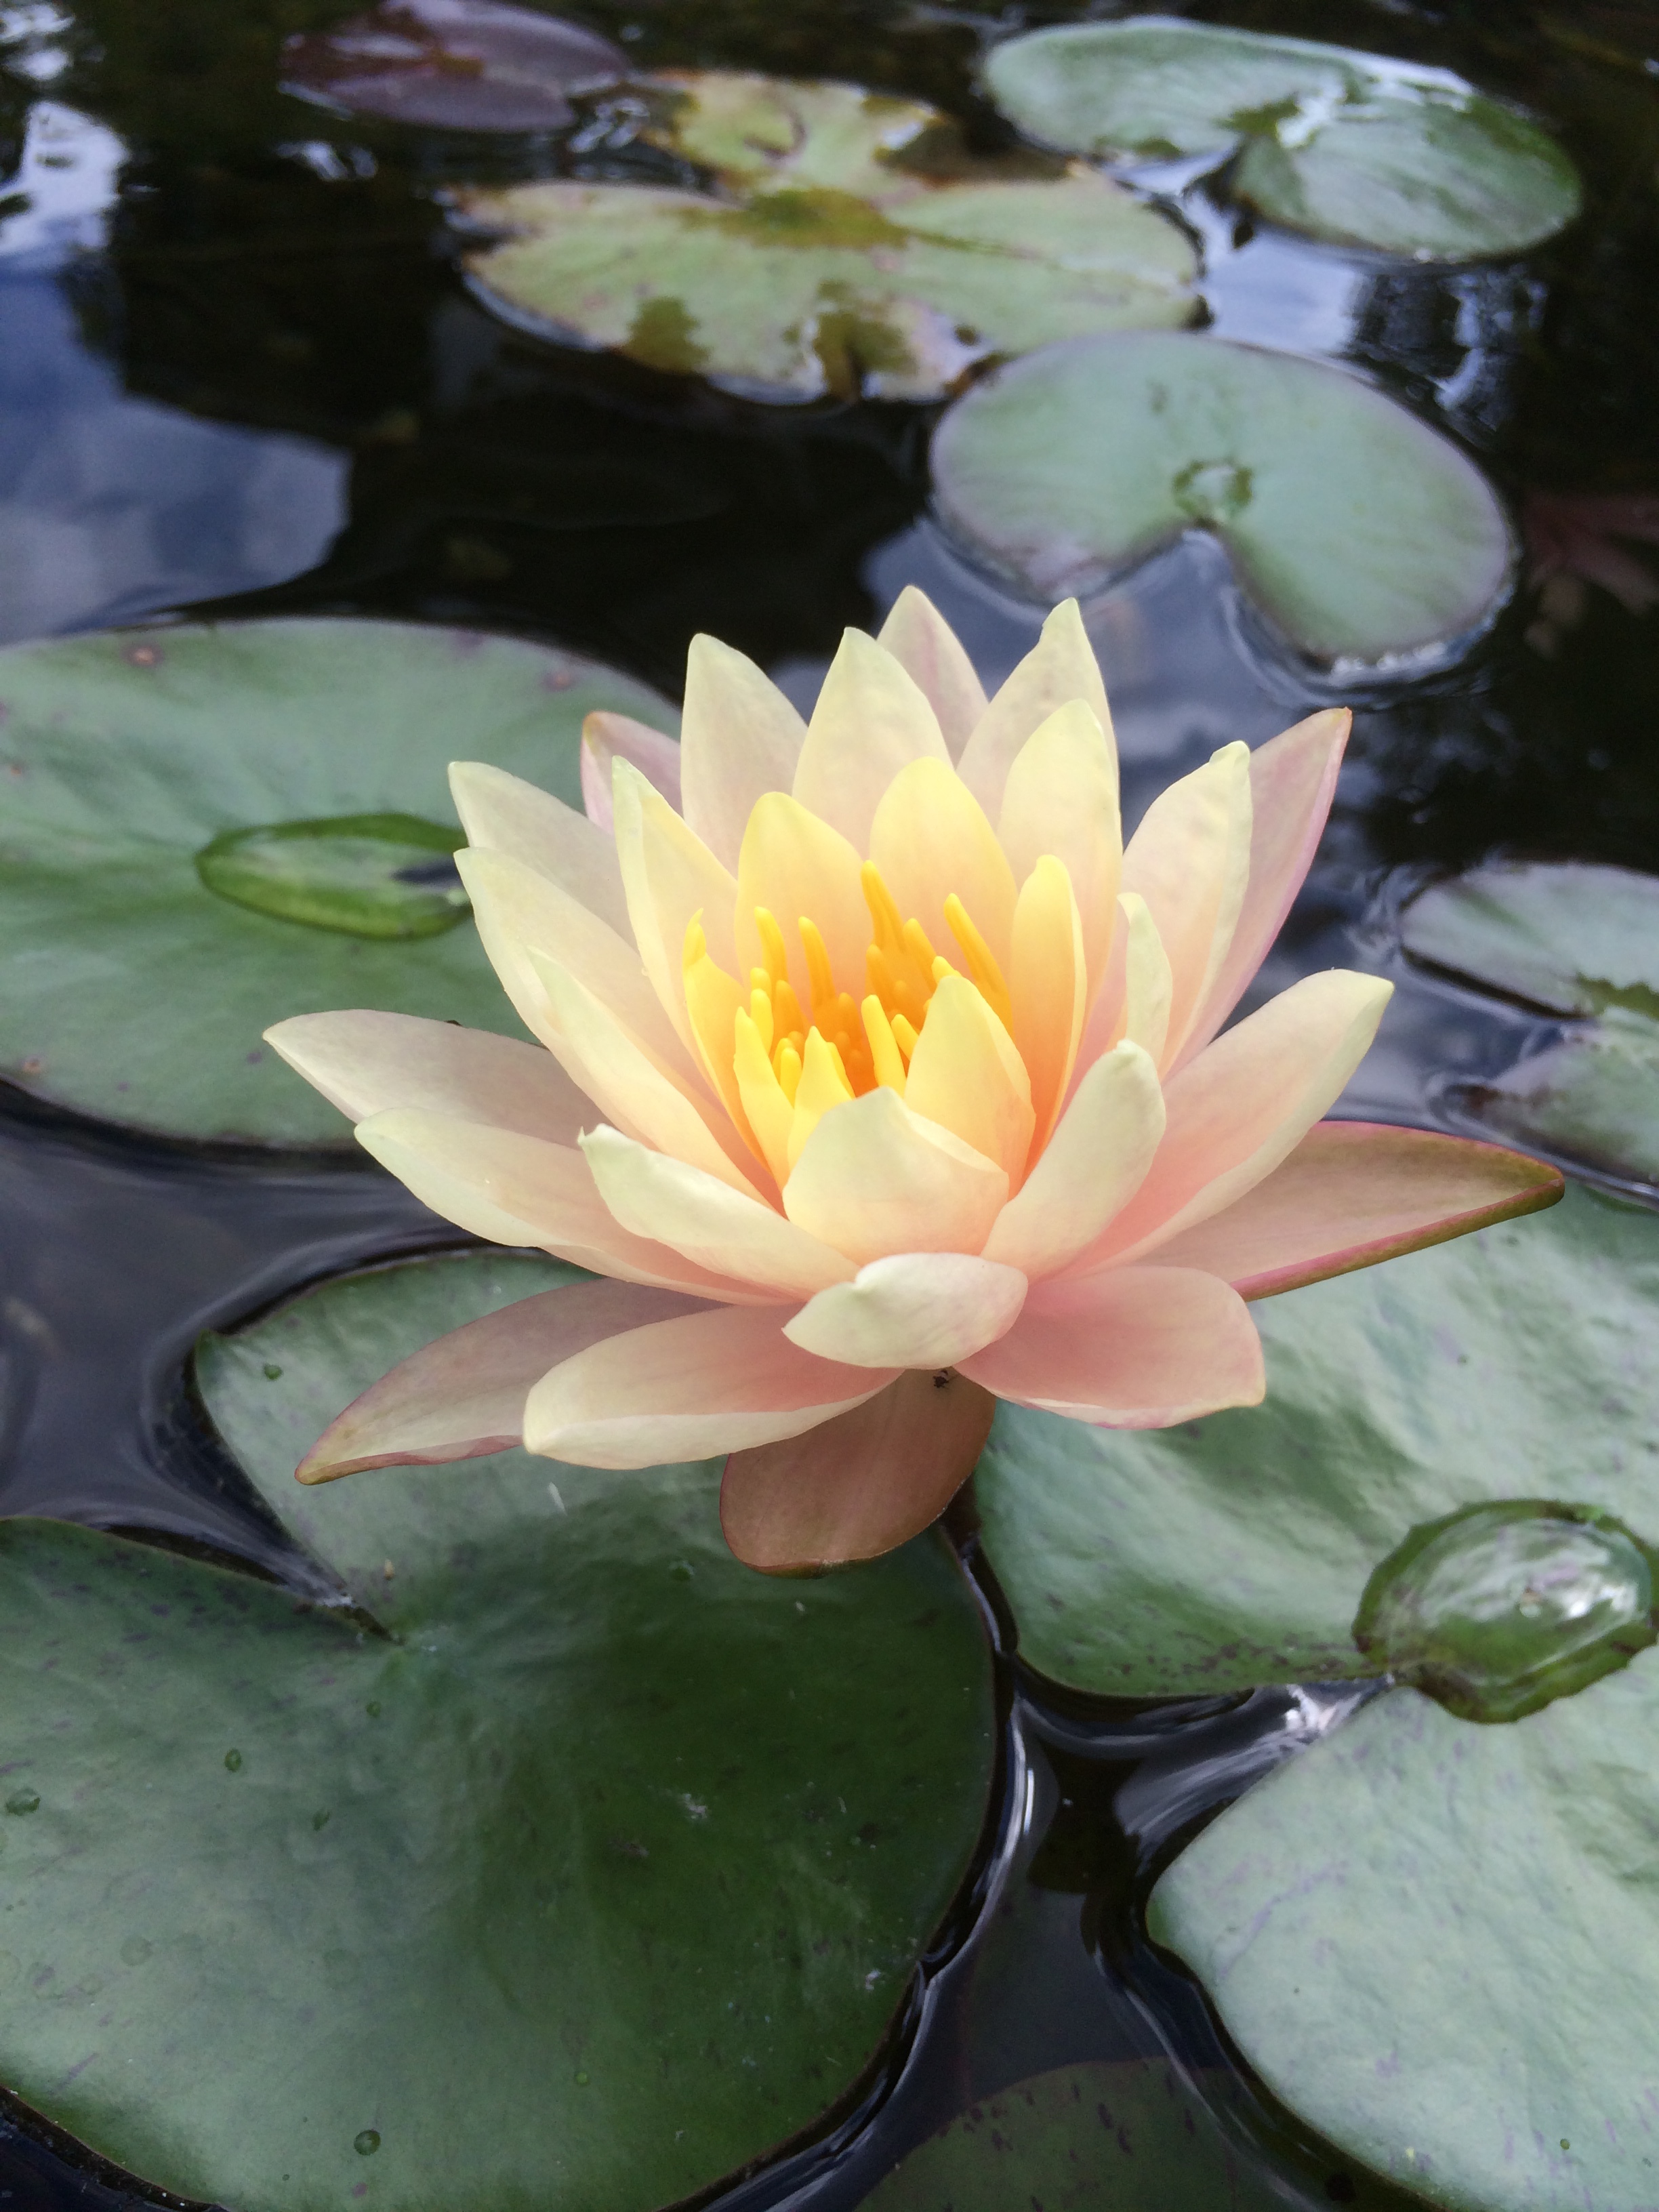 Lotus vs Water Lilies - They Are Not The Same!